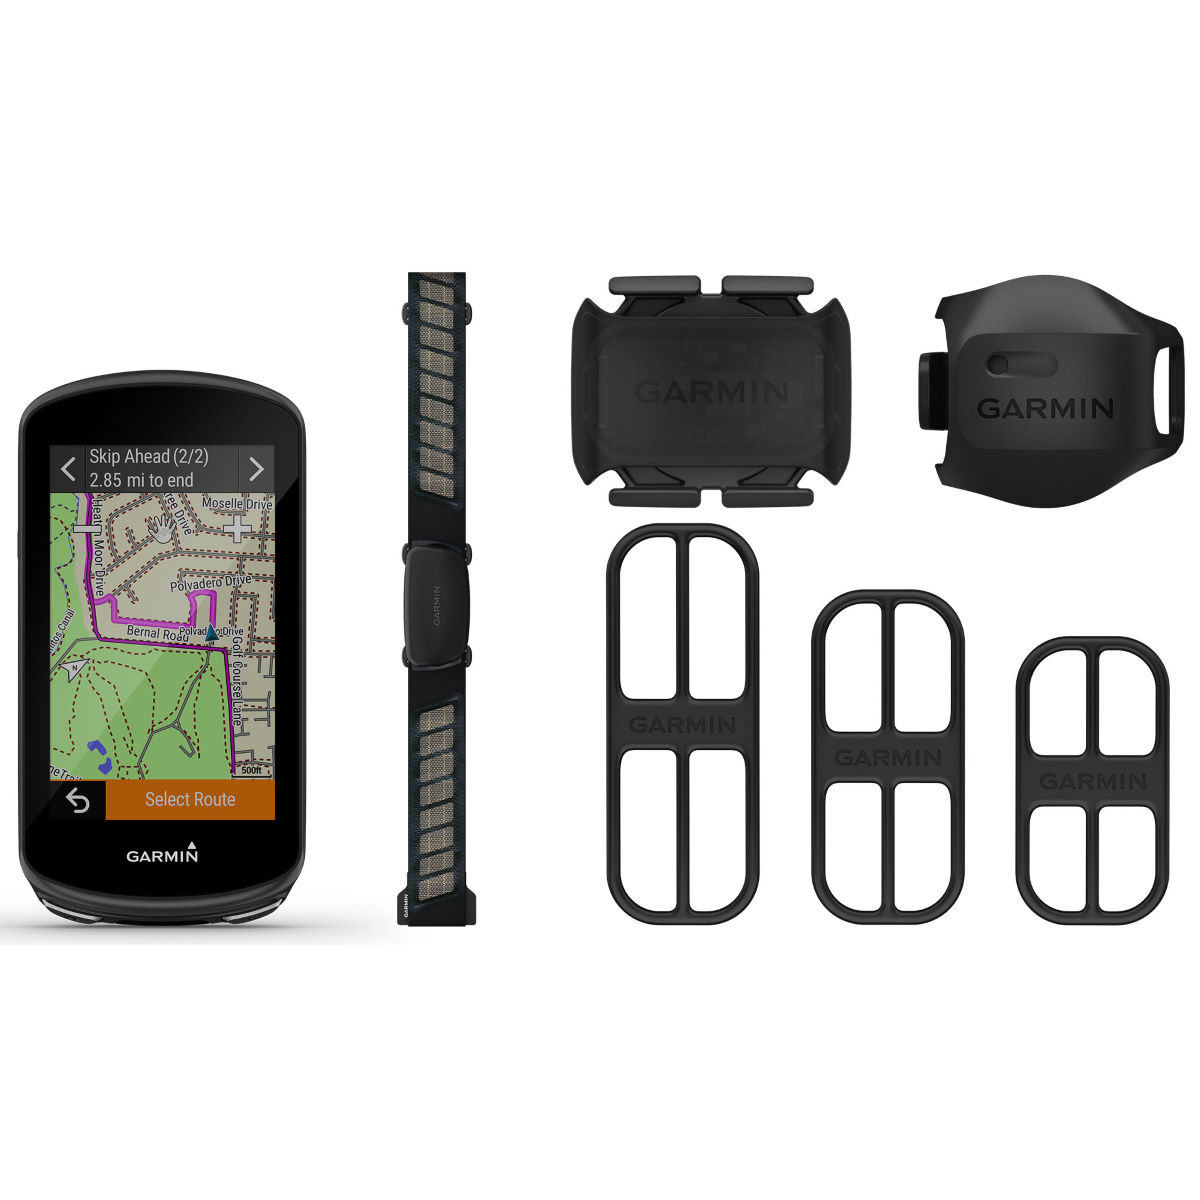 Garmin Edge 1030 Plus GPS Cycle Computer Bundle - Ciclocomputadores